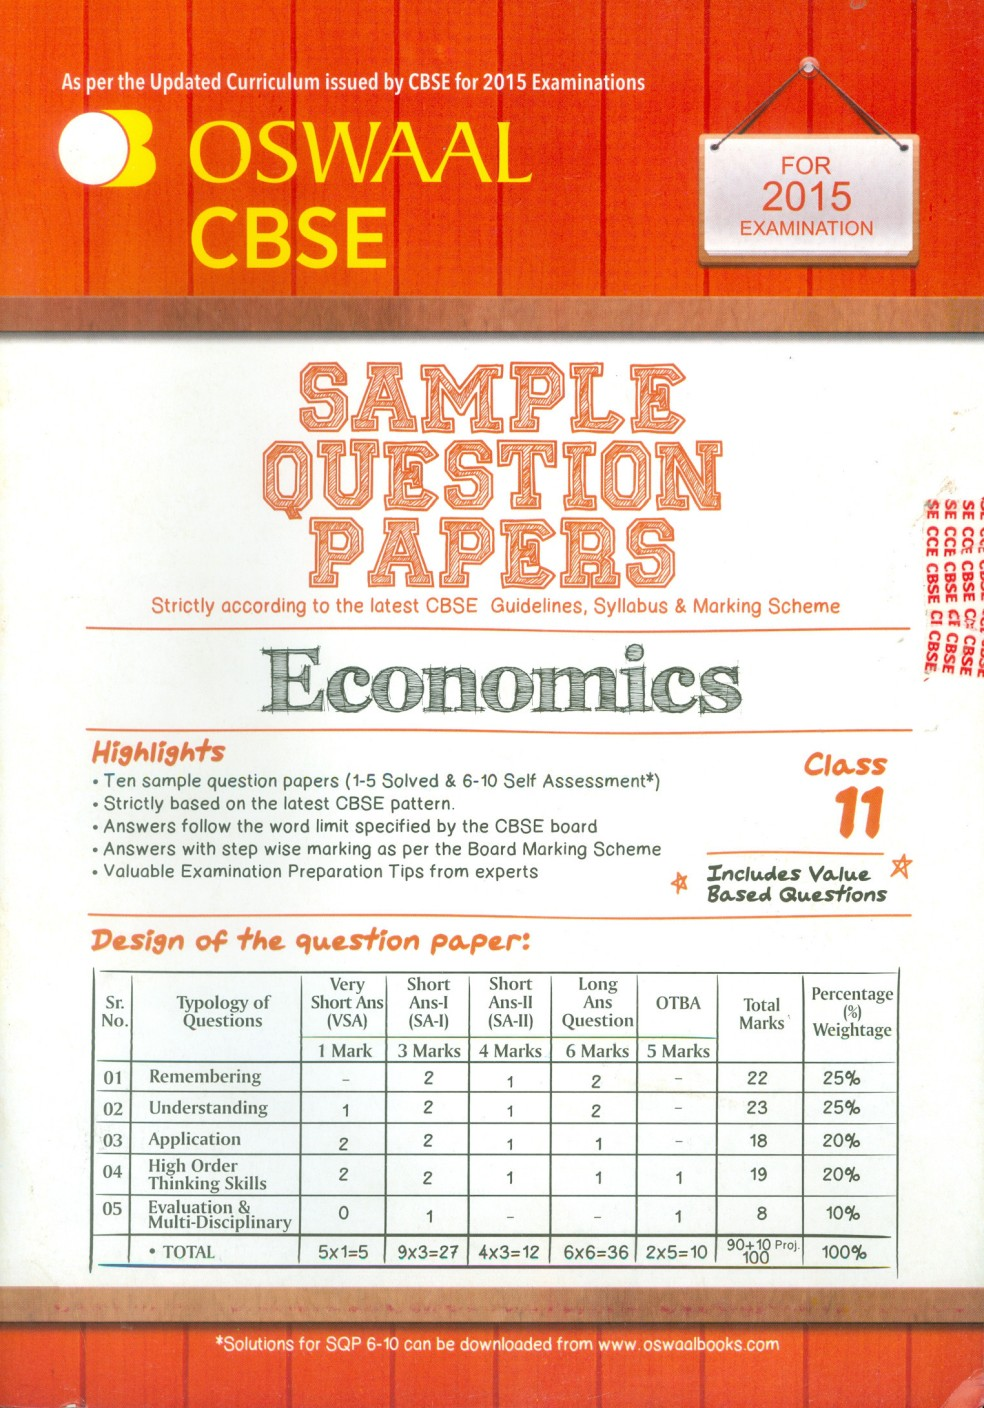 oswaal cbse sample question papers for class 11 economics buy oswaal cbse sample question papers for class 11 economics share facebook